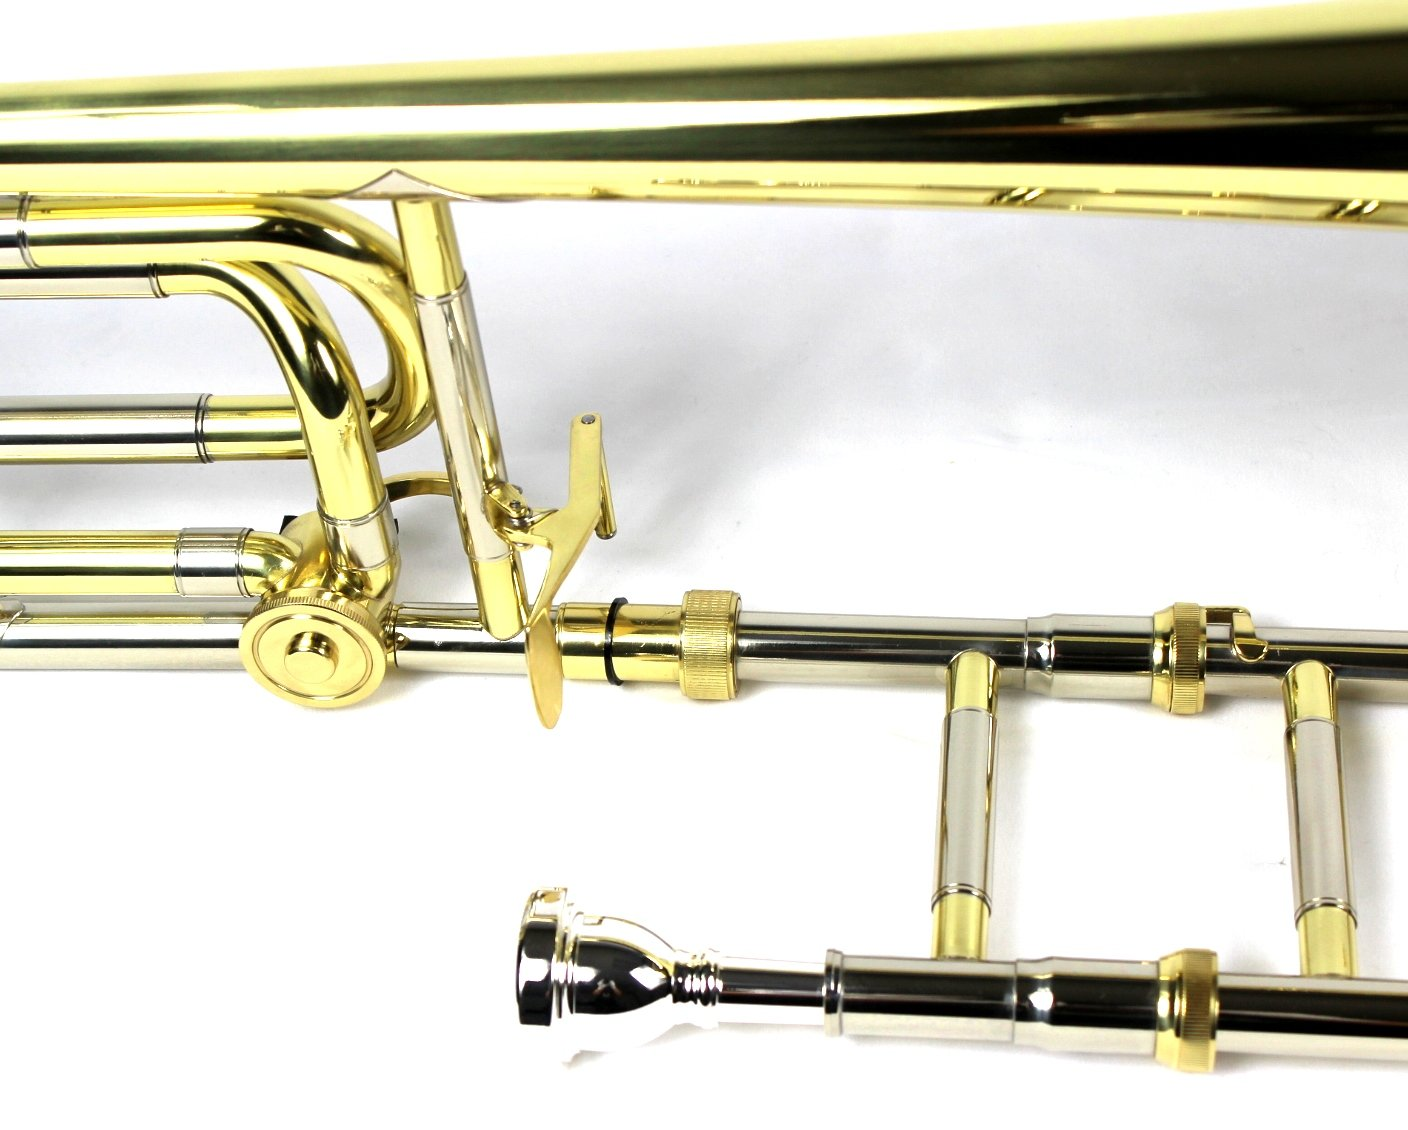 Brand New Bb/F Bass Trombone w/ Case and Mouthpiece- Gold Lacquer Finish by Moz (Image #5)